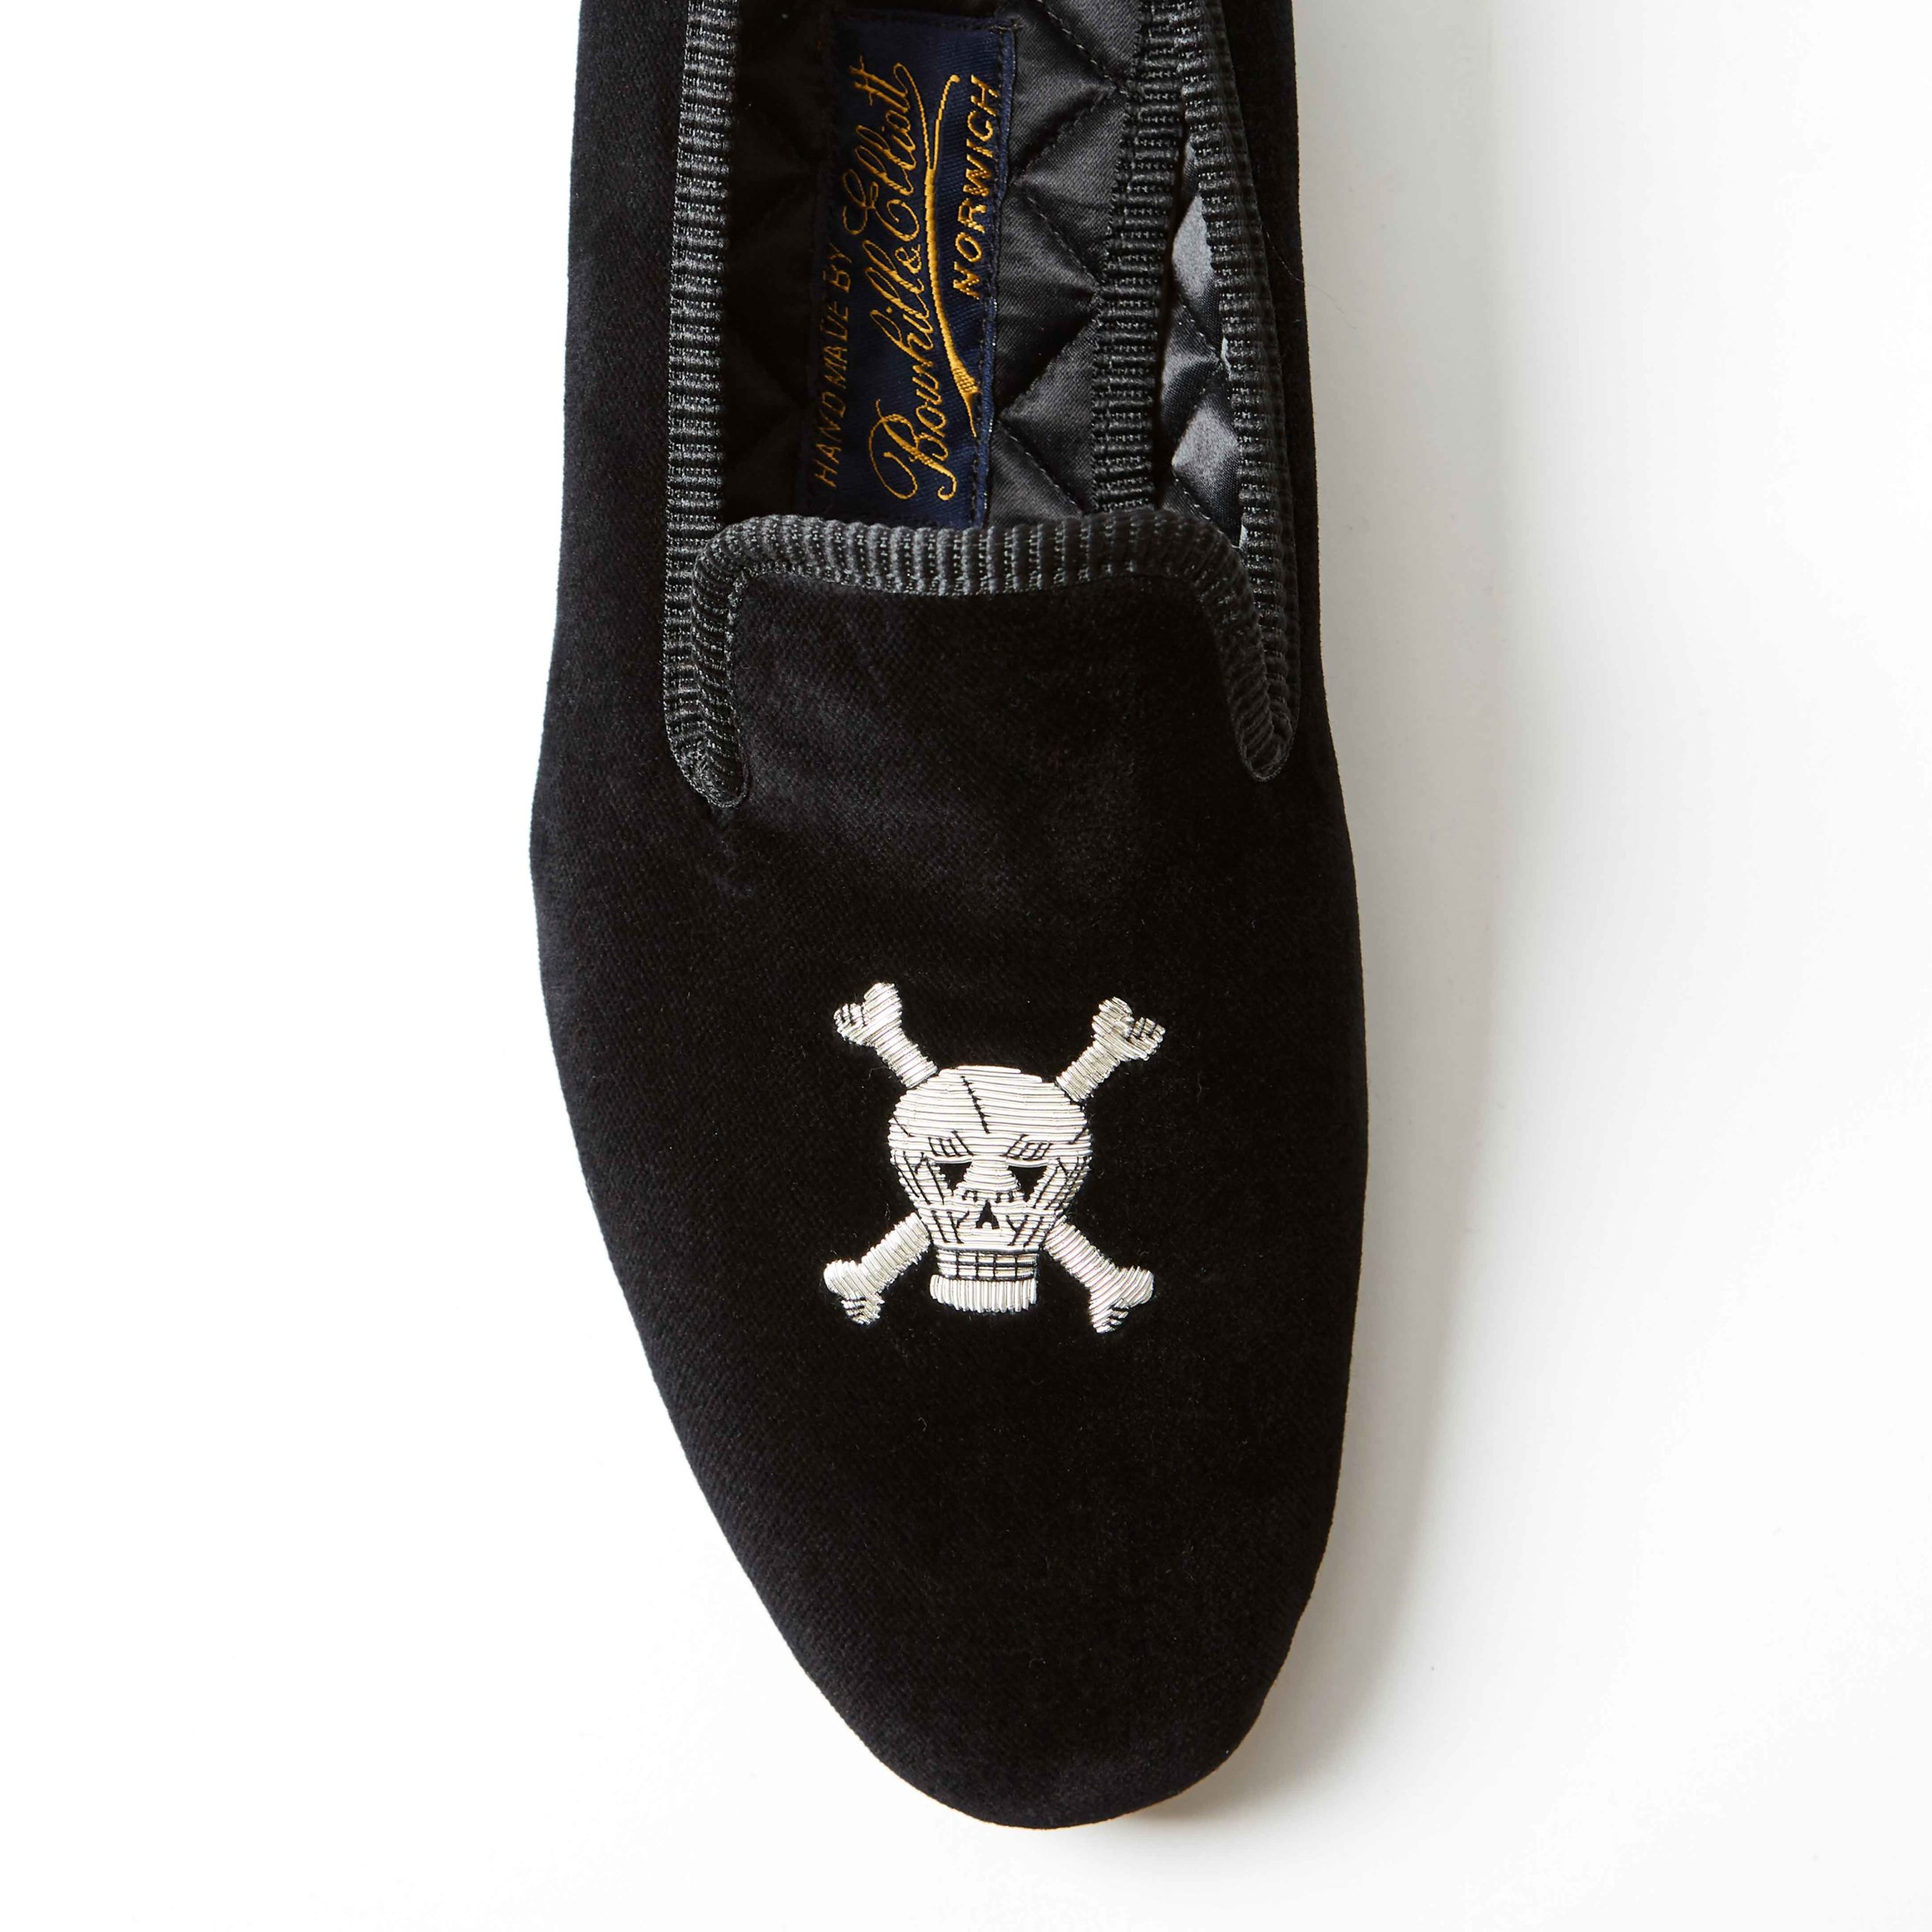 Bowhill and Elliott Black Velvet Albert Slippers with Skull and Crossbones 1